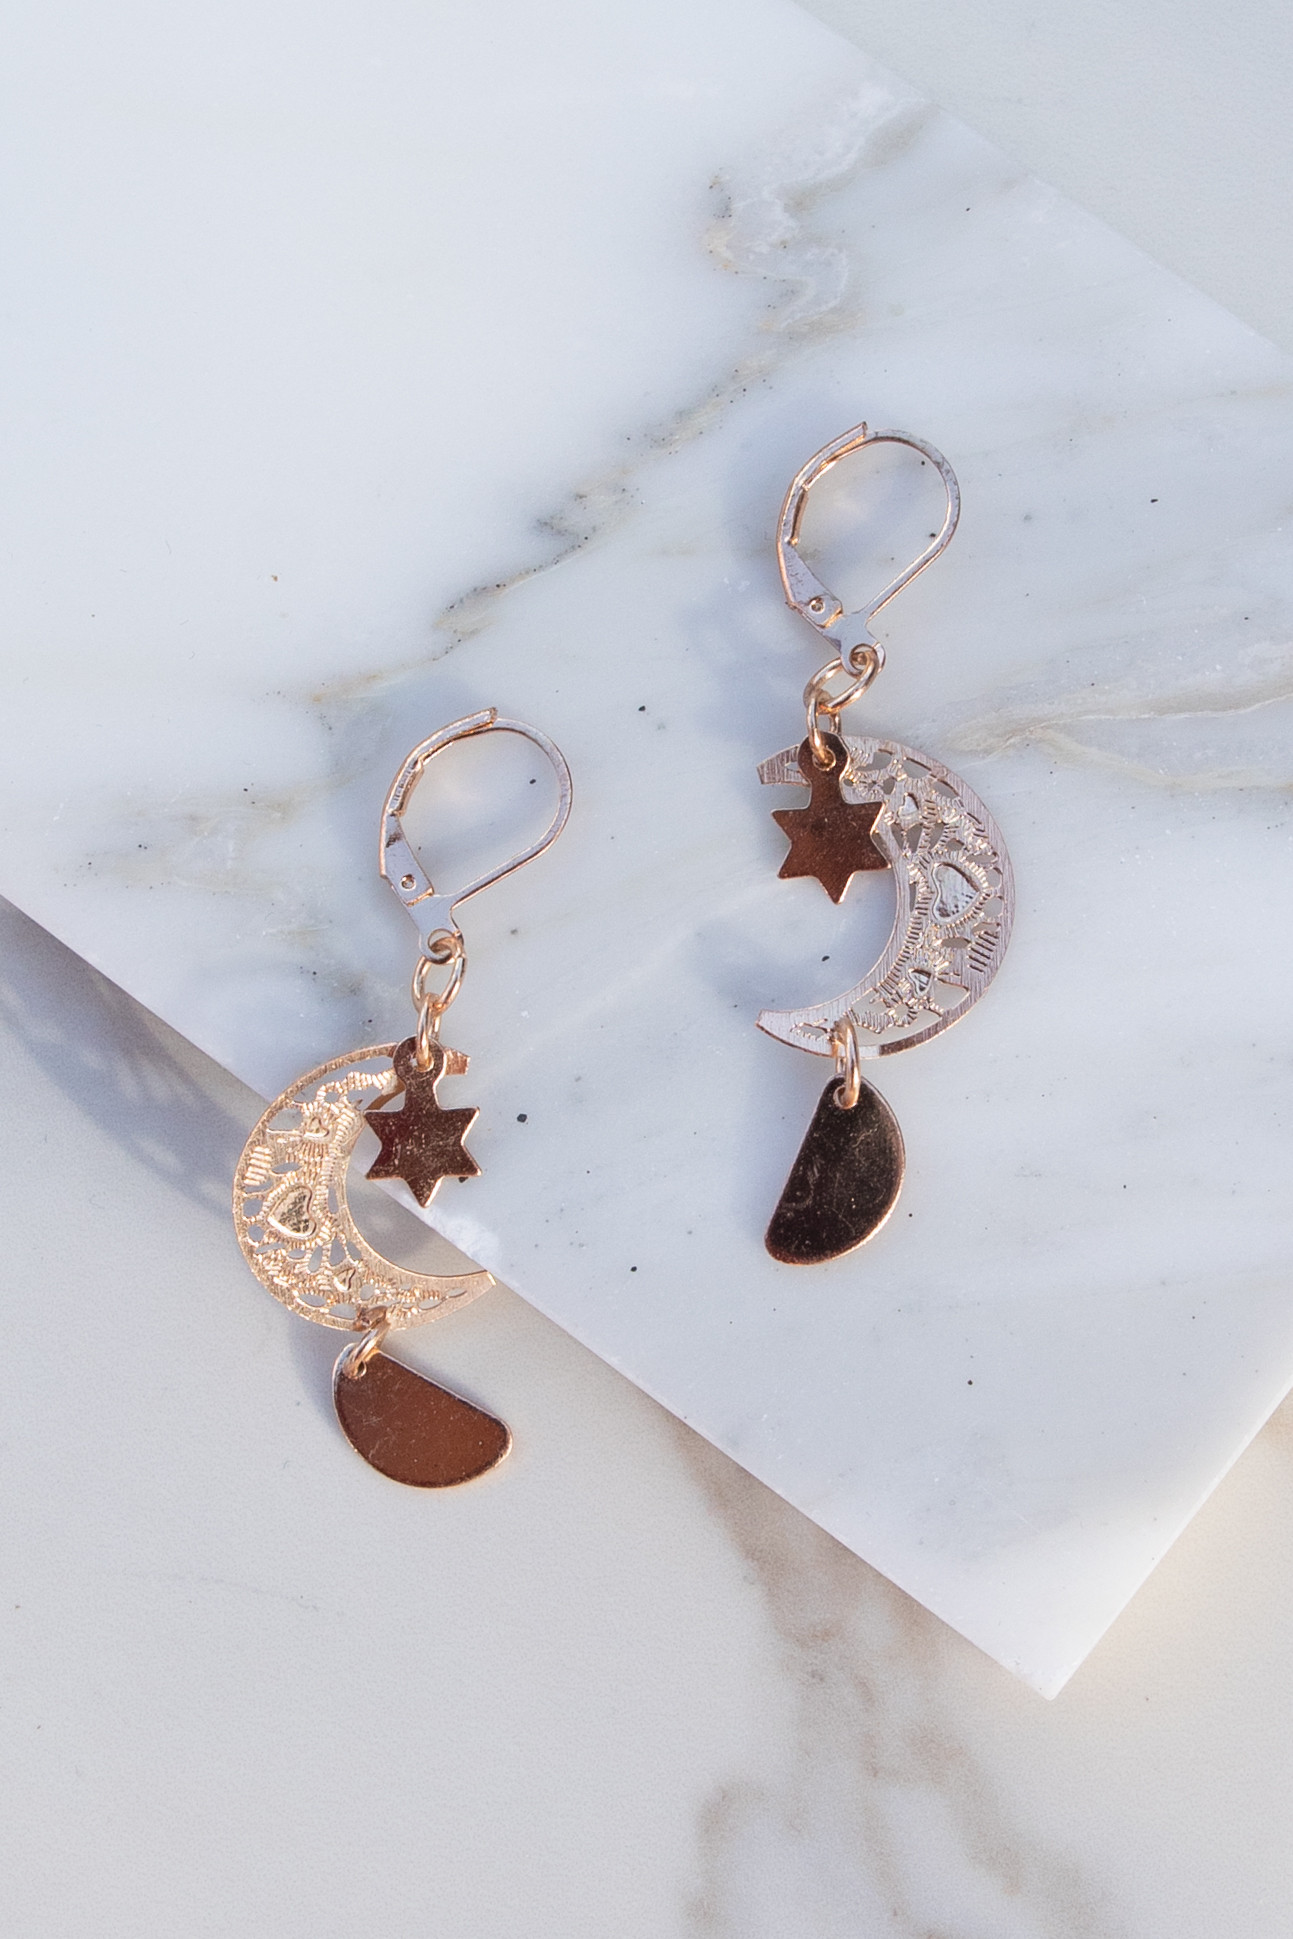 Rose Gold Moon and Star Dangle Earrings with Half Circle